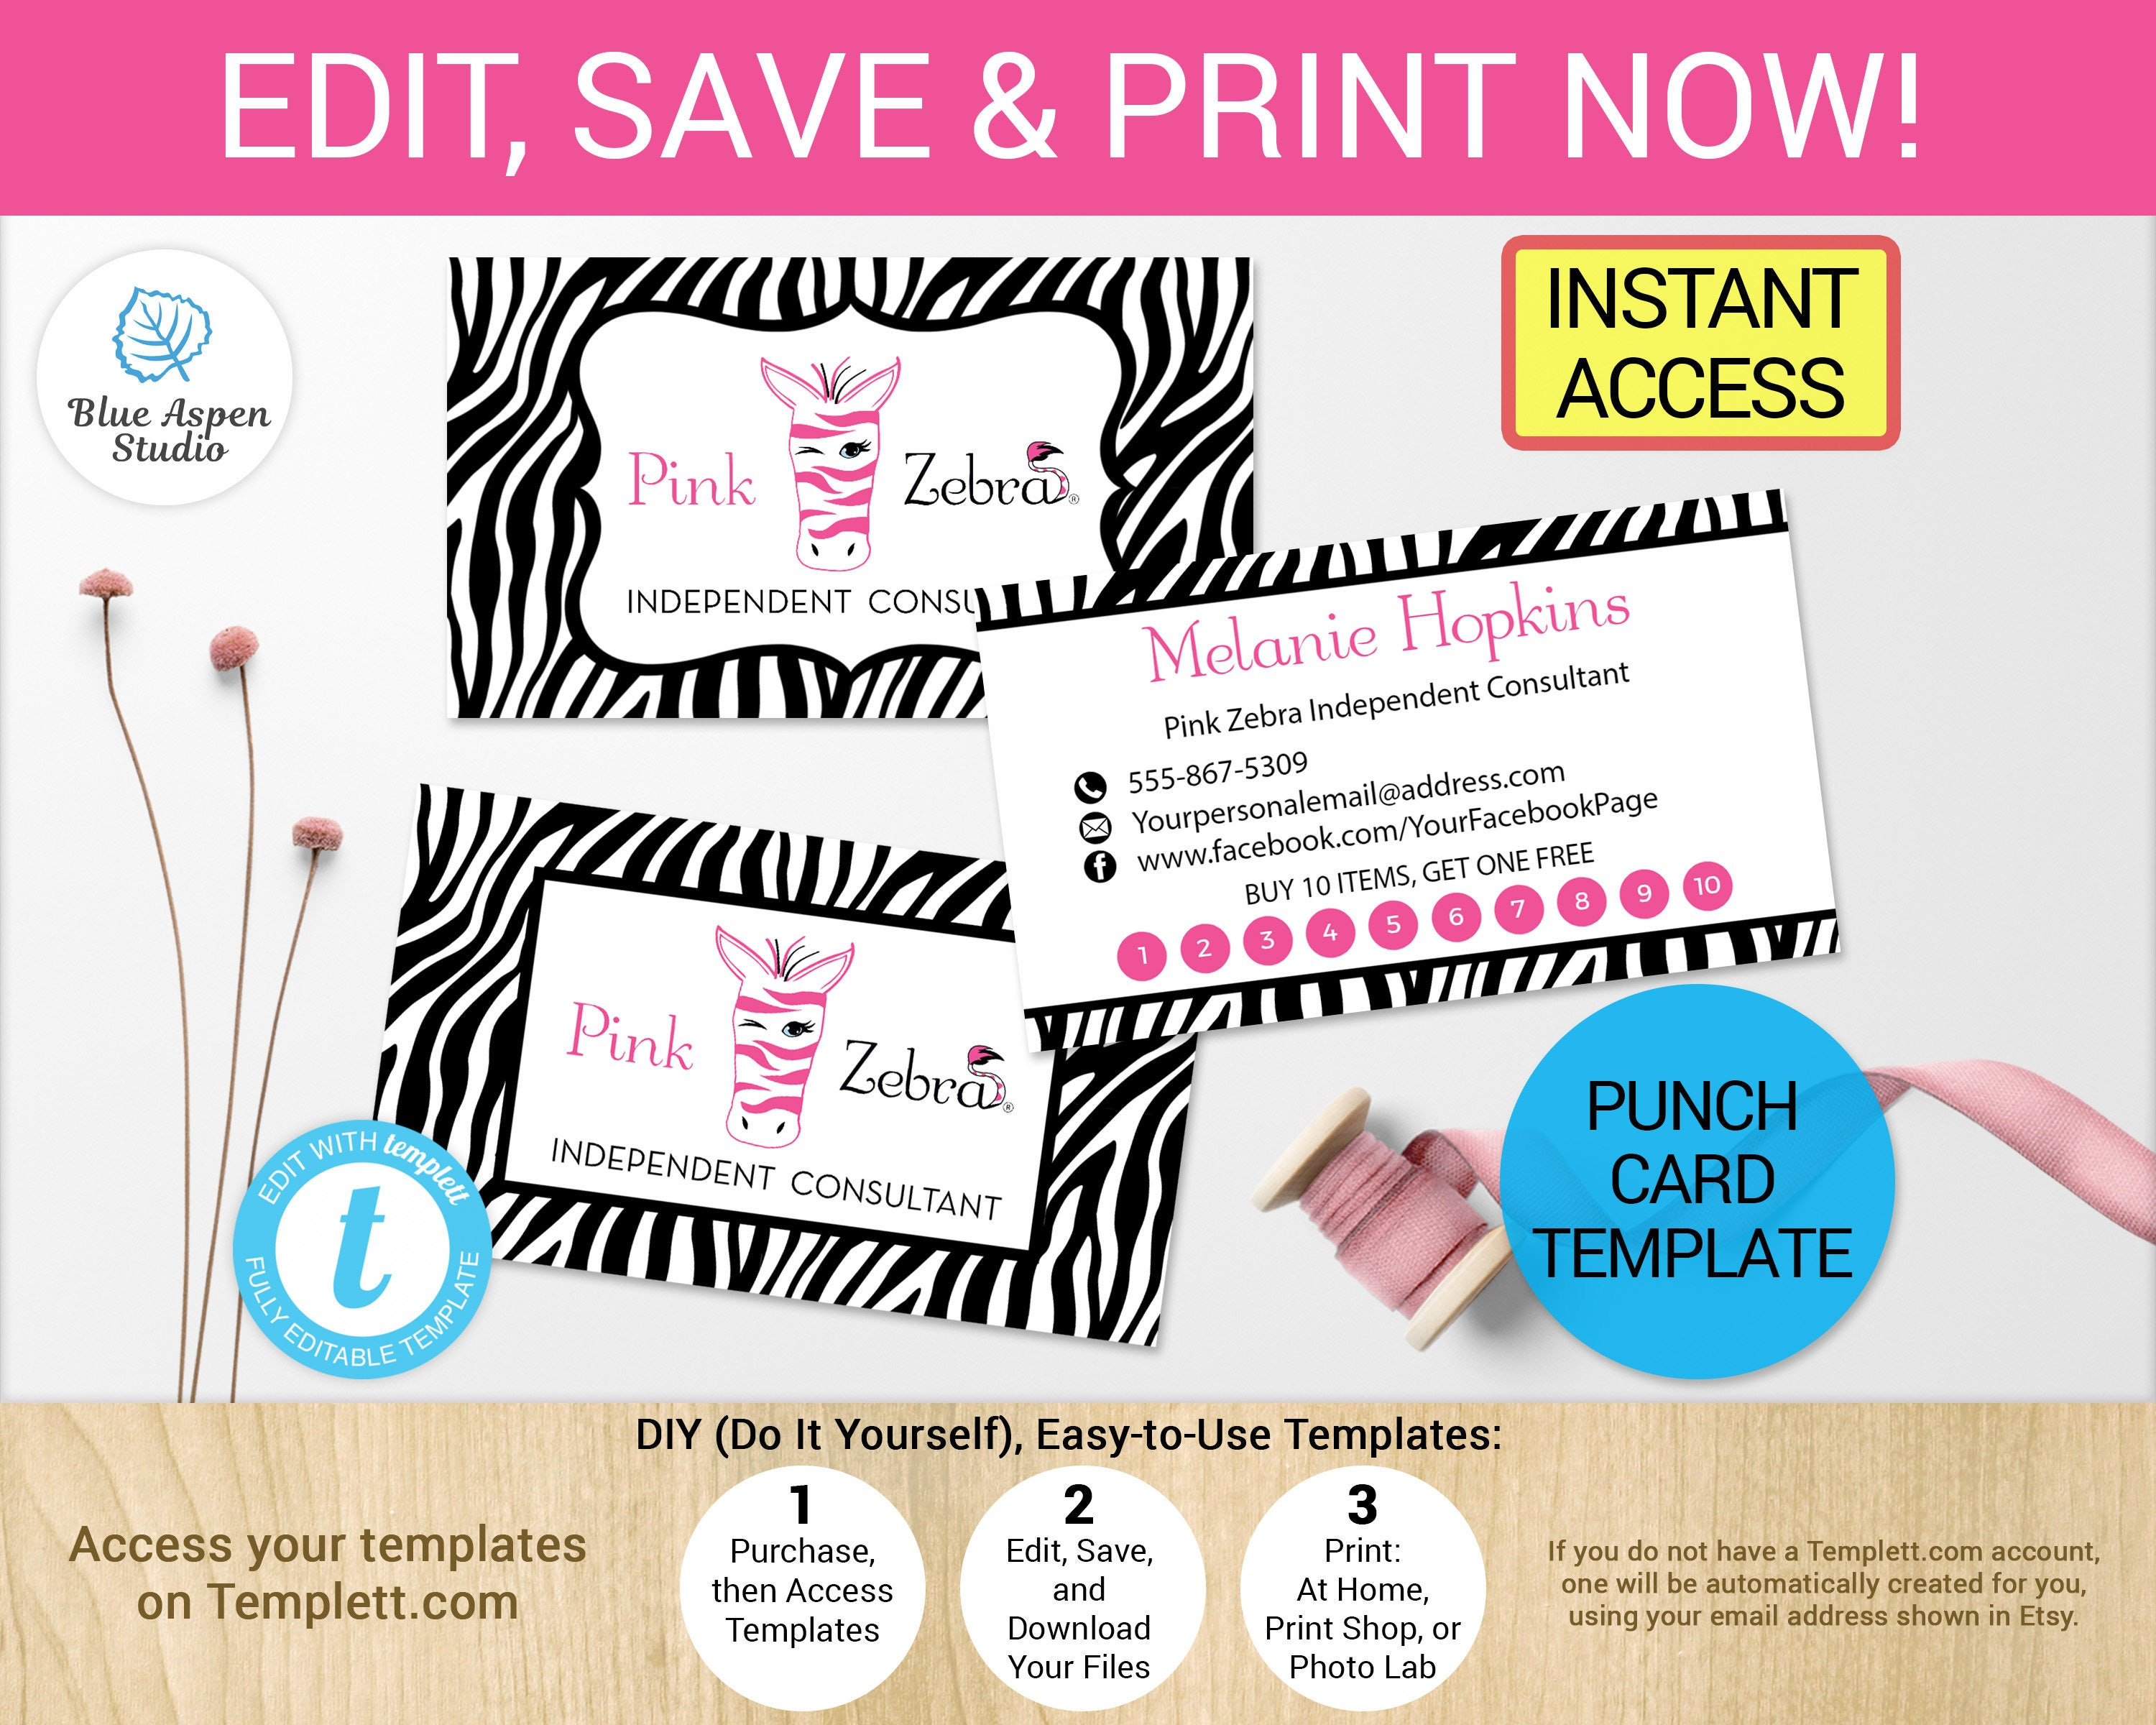 Business cards do it yourself free image collections card design pink zebra punch card loyalty business cards printable digital zoom reheart image collections solutioingenieria Images